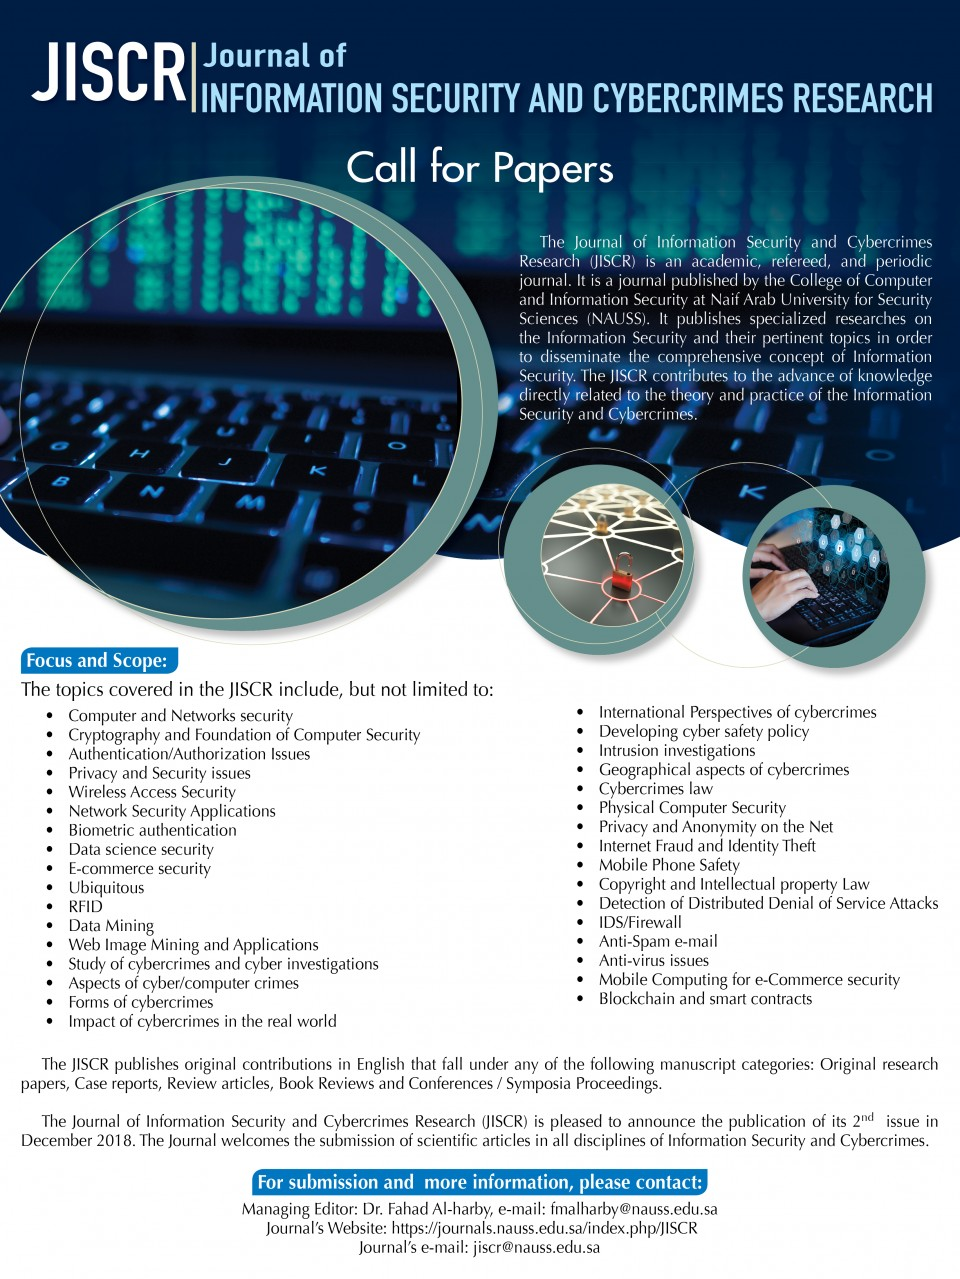 024 Call For December Cyber Security Research Dreaded Paper 2019 Papers 2018 960